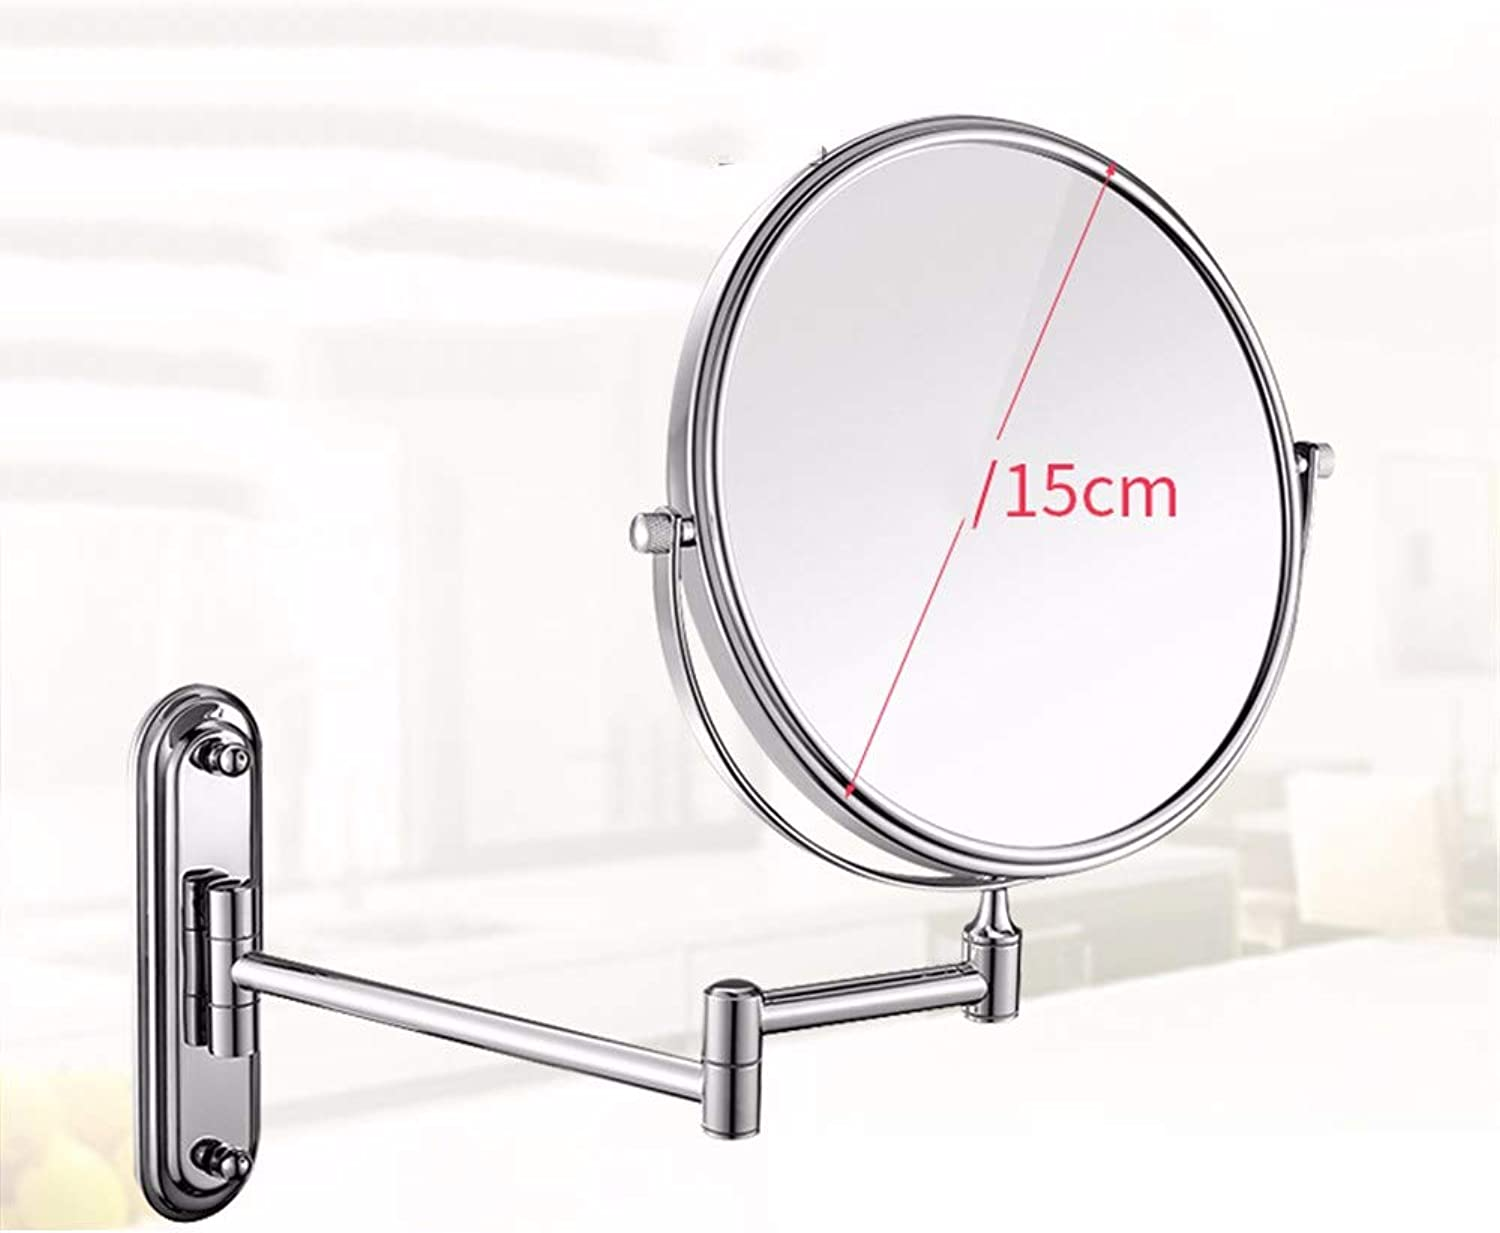 Shaving Mirror Wall Mounted Bathroom Mirror 3X Magnification Bathroom Double-Sided Round Swivel Vanity Mirror with 360° redatable 8Inch Extendable Arm Stainless Steel,8inch